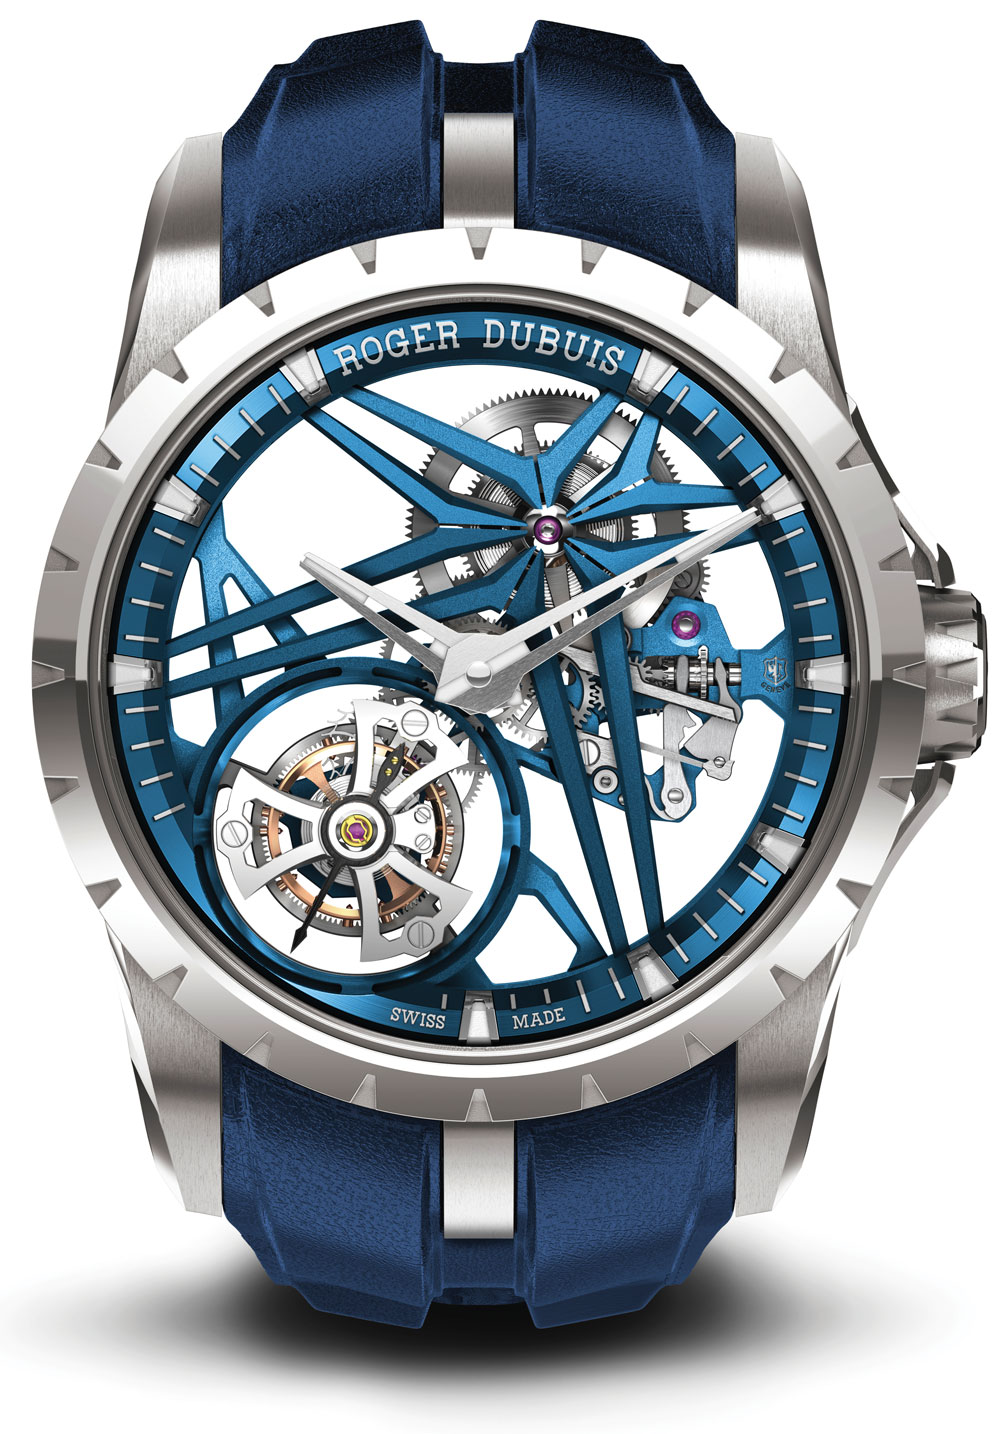 Roger Dubuis Excalibur Flying Tourbillon 42mm Watch